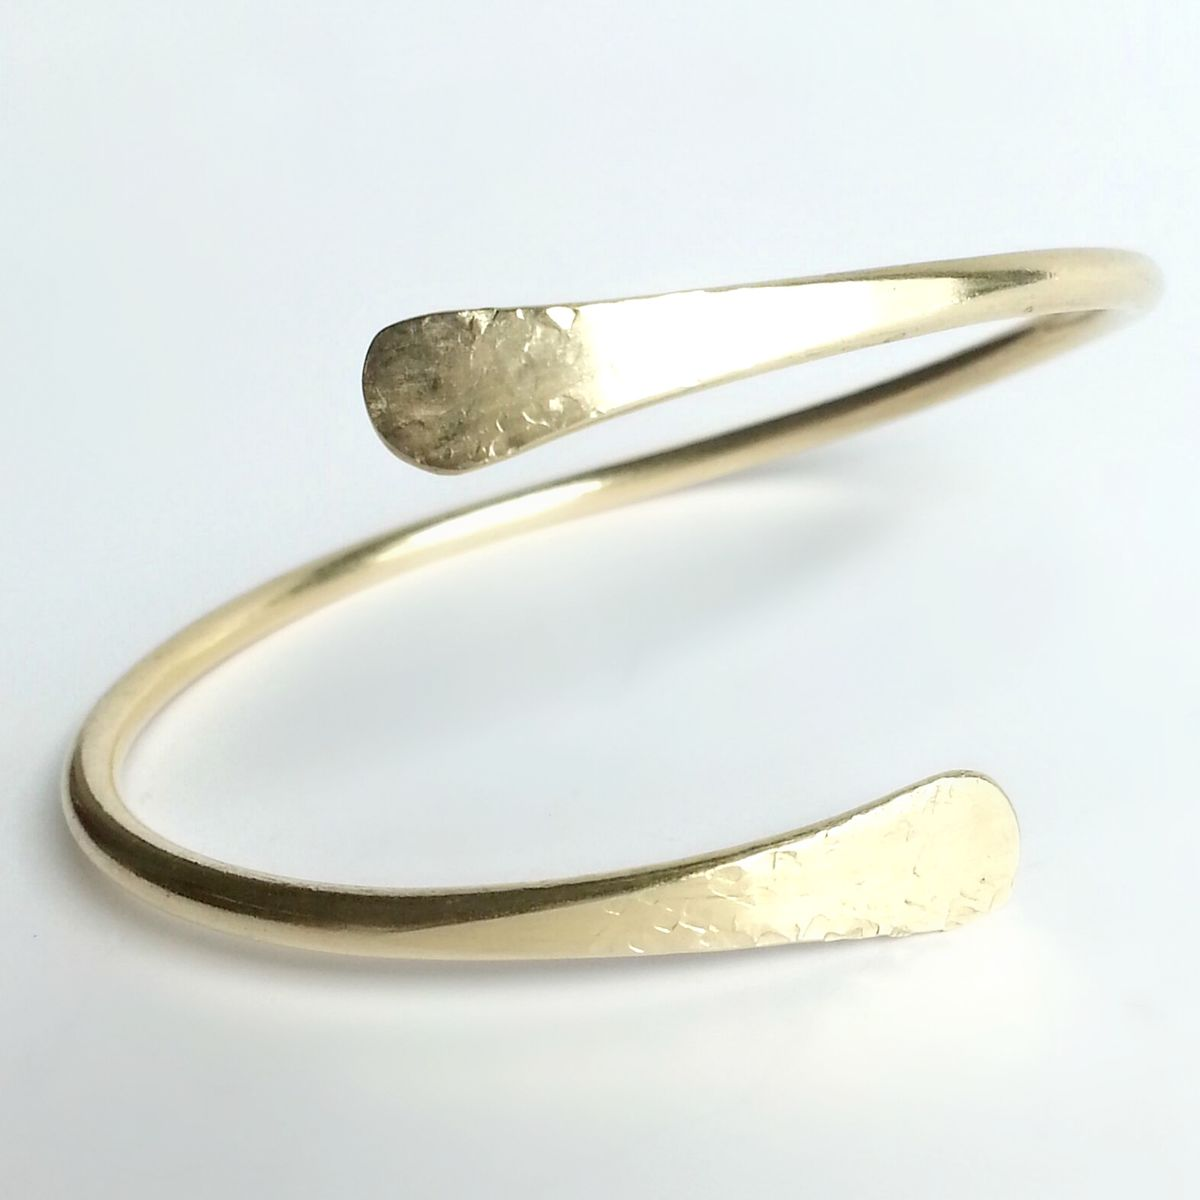 Modern Paddle Cuff Bracelet - product images  of